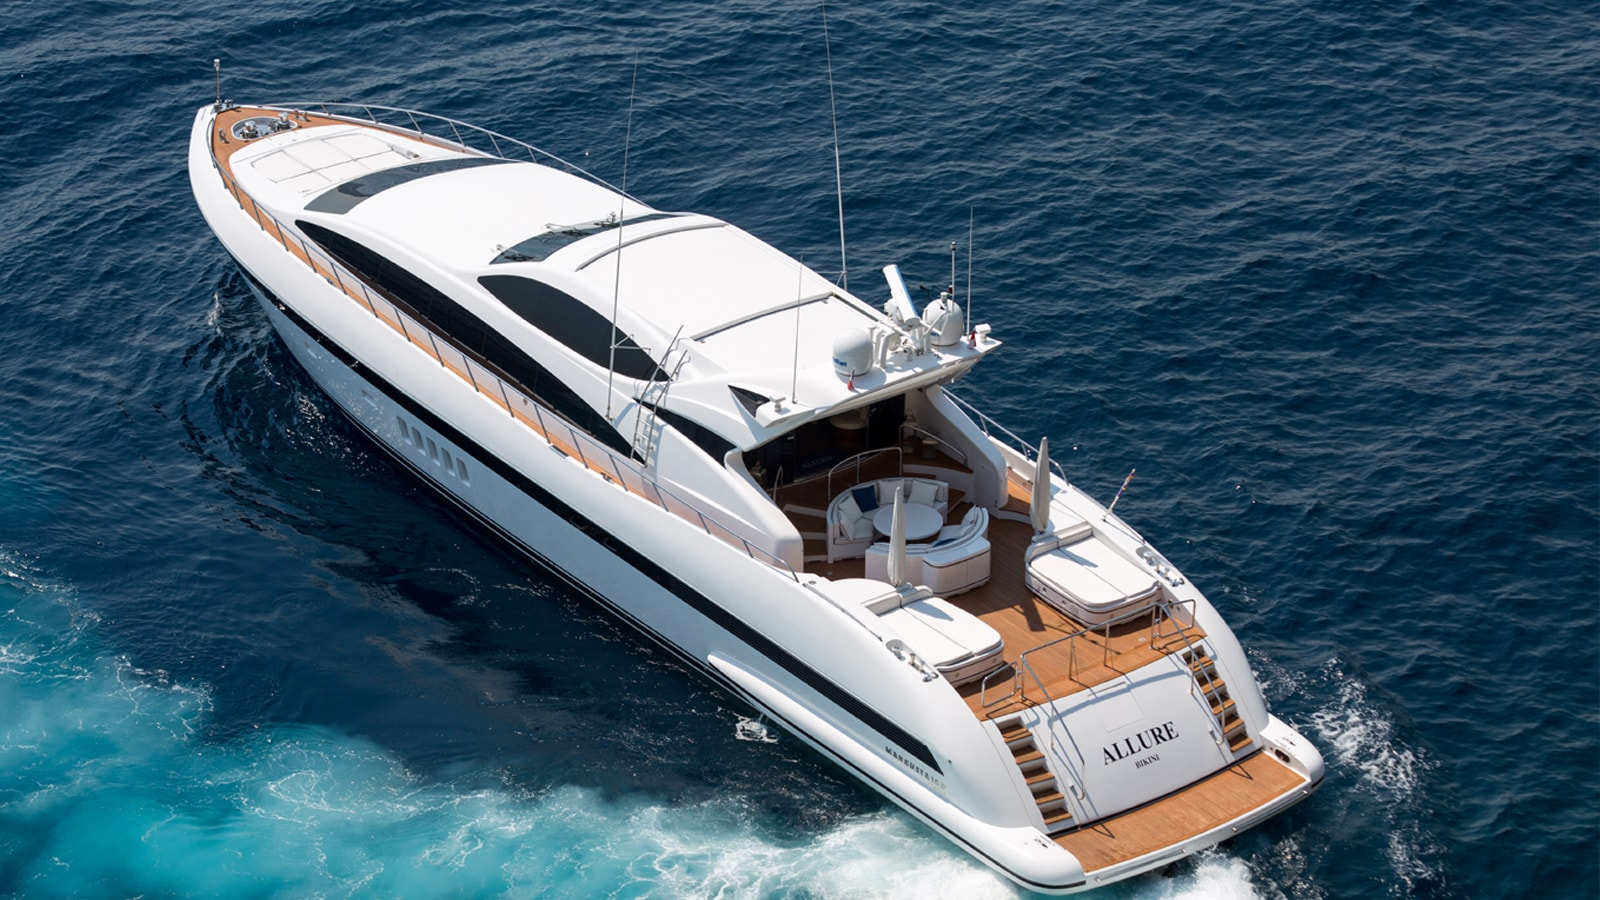 Superyacht Allure for Charter